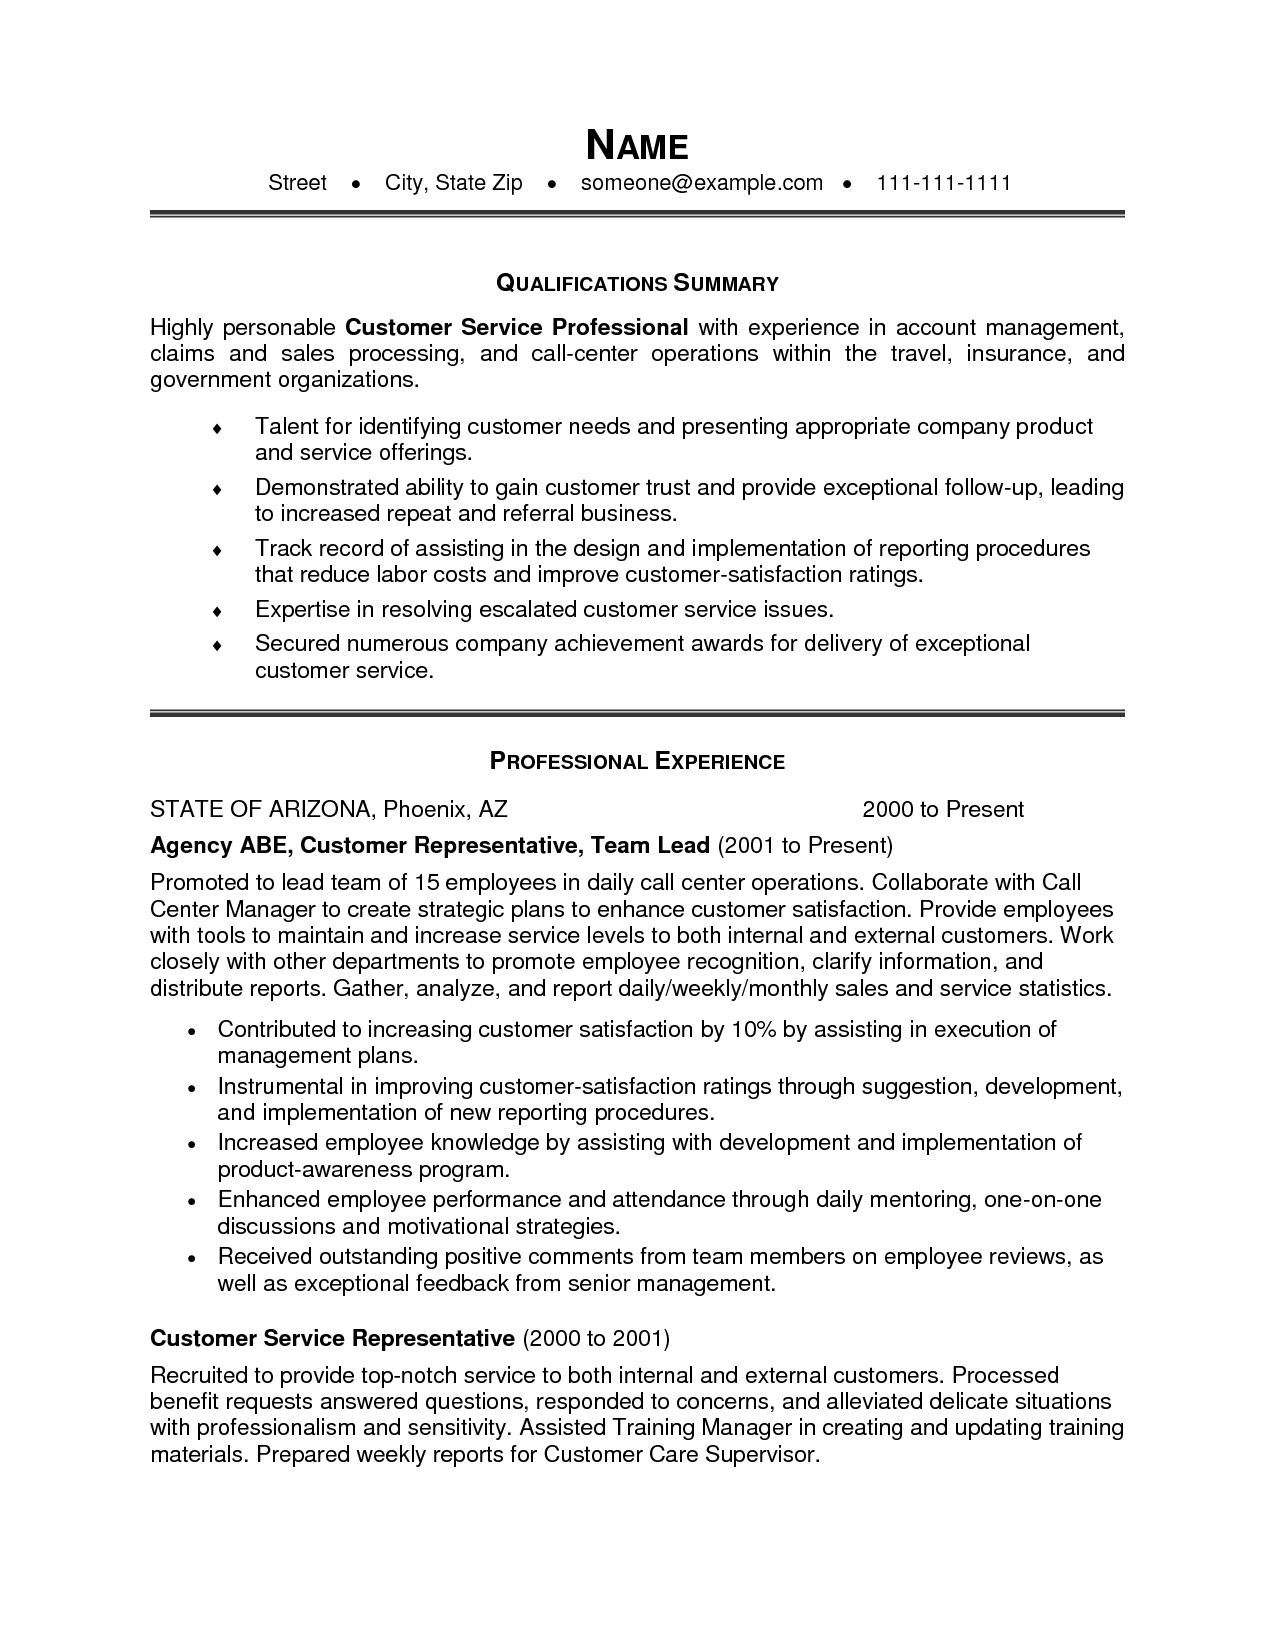 Resume Summary Examples Customer Service Resume Summary Examples Resume Summary Examples